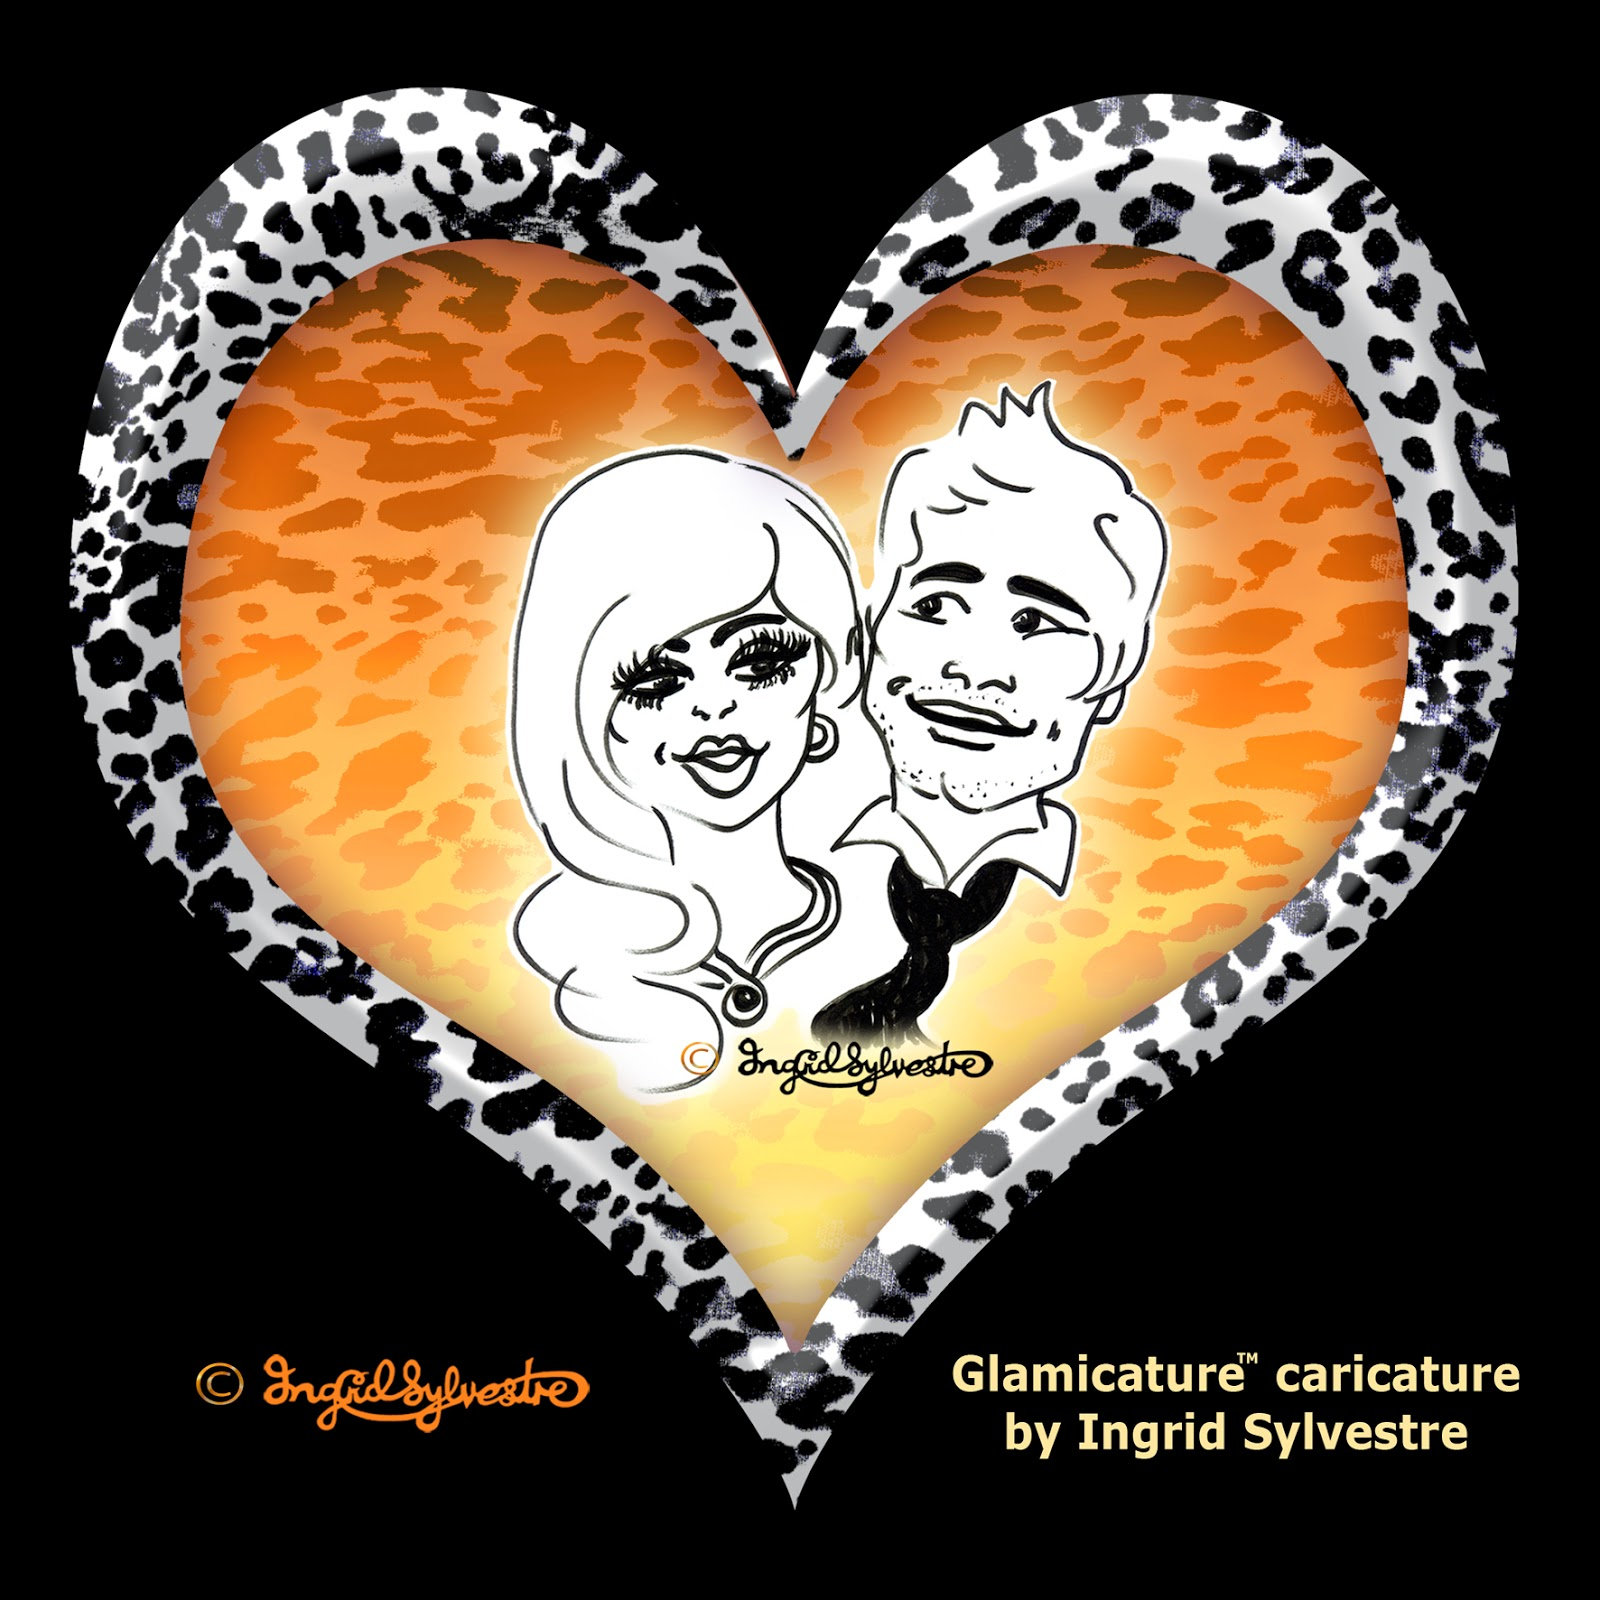 Fun Wedding ideas. Wedding Day Entertainment Ideas. Unique ideas for Wedding Reception Entertainment. Great ideas for unusual wedding day entertainment. Wedding event ideas for entertainment during reception. Unusual interesting fun Wedding planning ideas.  Party Glamicature in digital frame by UK caricature artist Ingrid Sylvestre North East UK Newcastle upon Tyne County Durham Sunderland Middlesbrough Teesside Northumberland Yorkshire Darlington